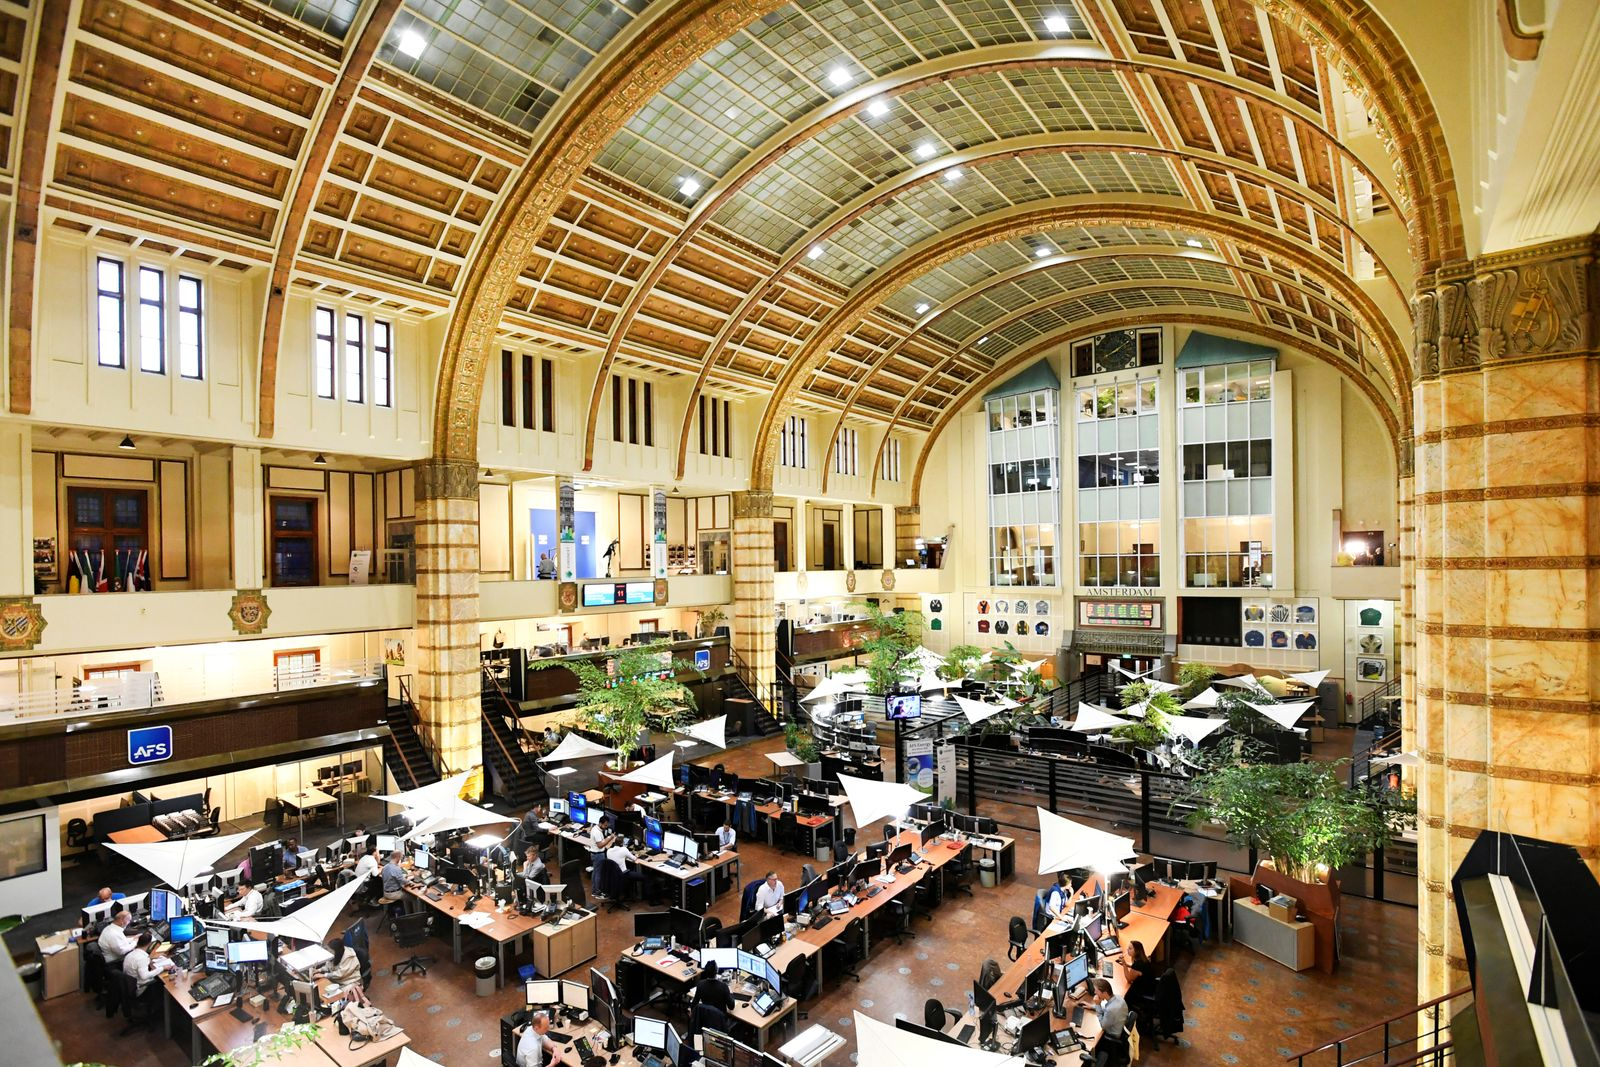 Overview of Amsterdam's stock exchange interior as Prosus begins trading on the Euronext stock exchange in Amsterdam